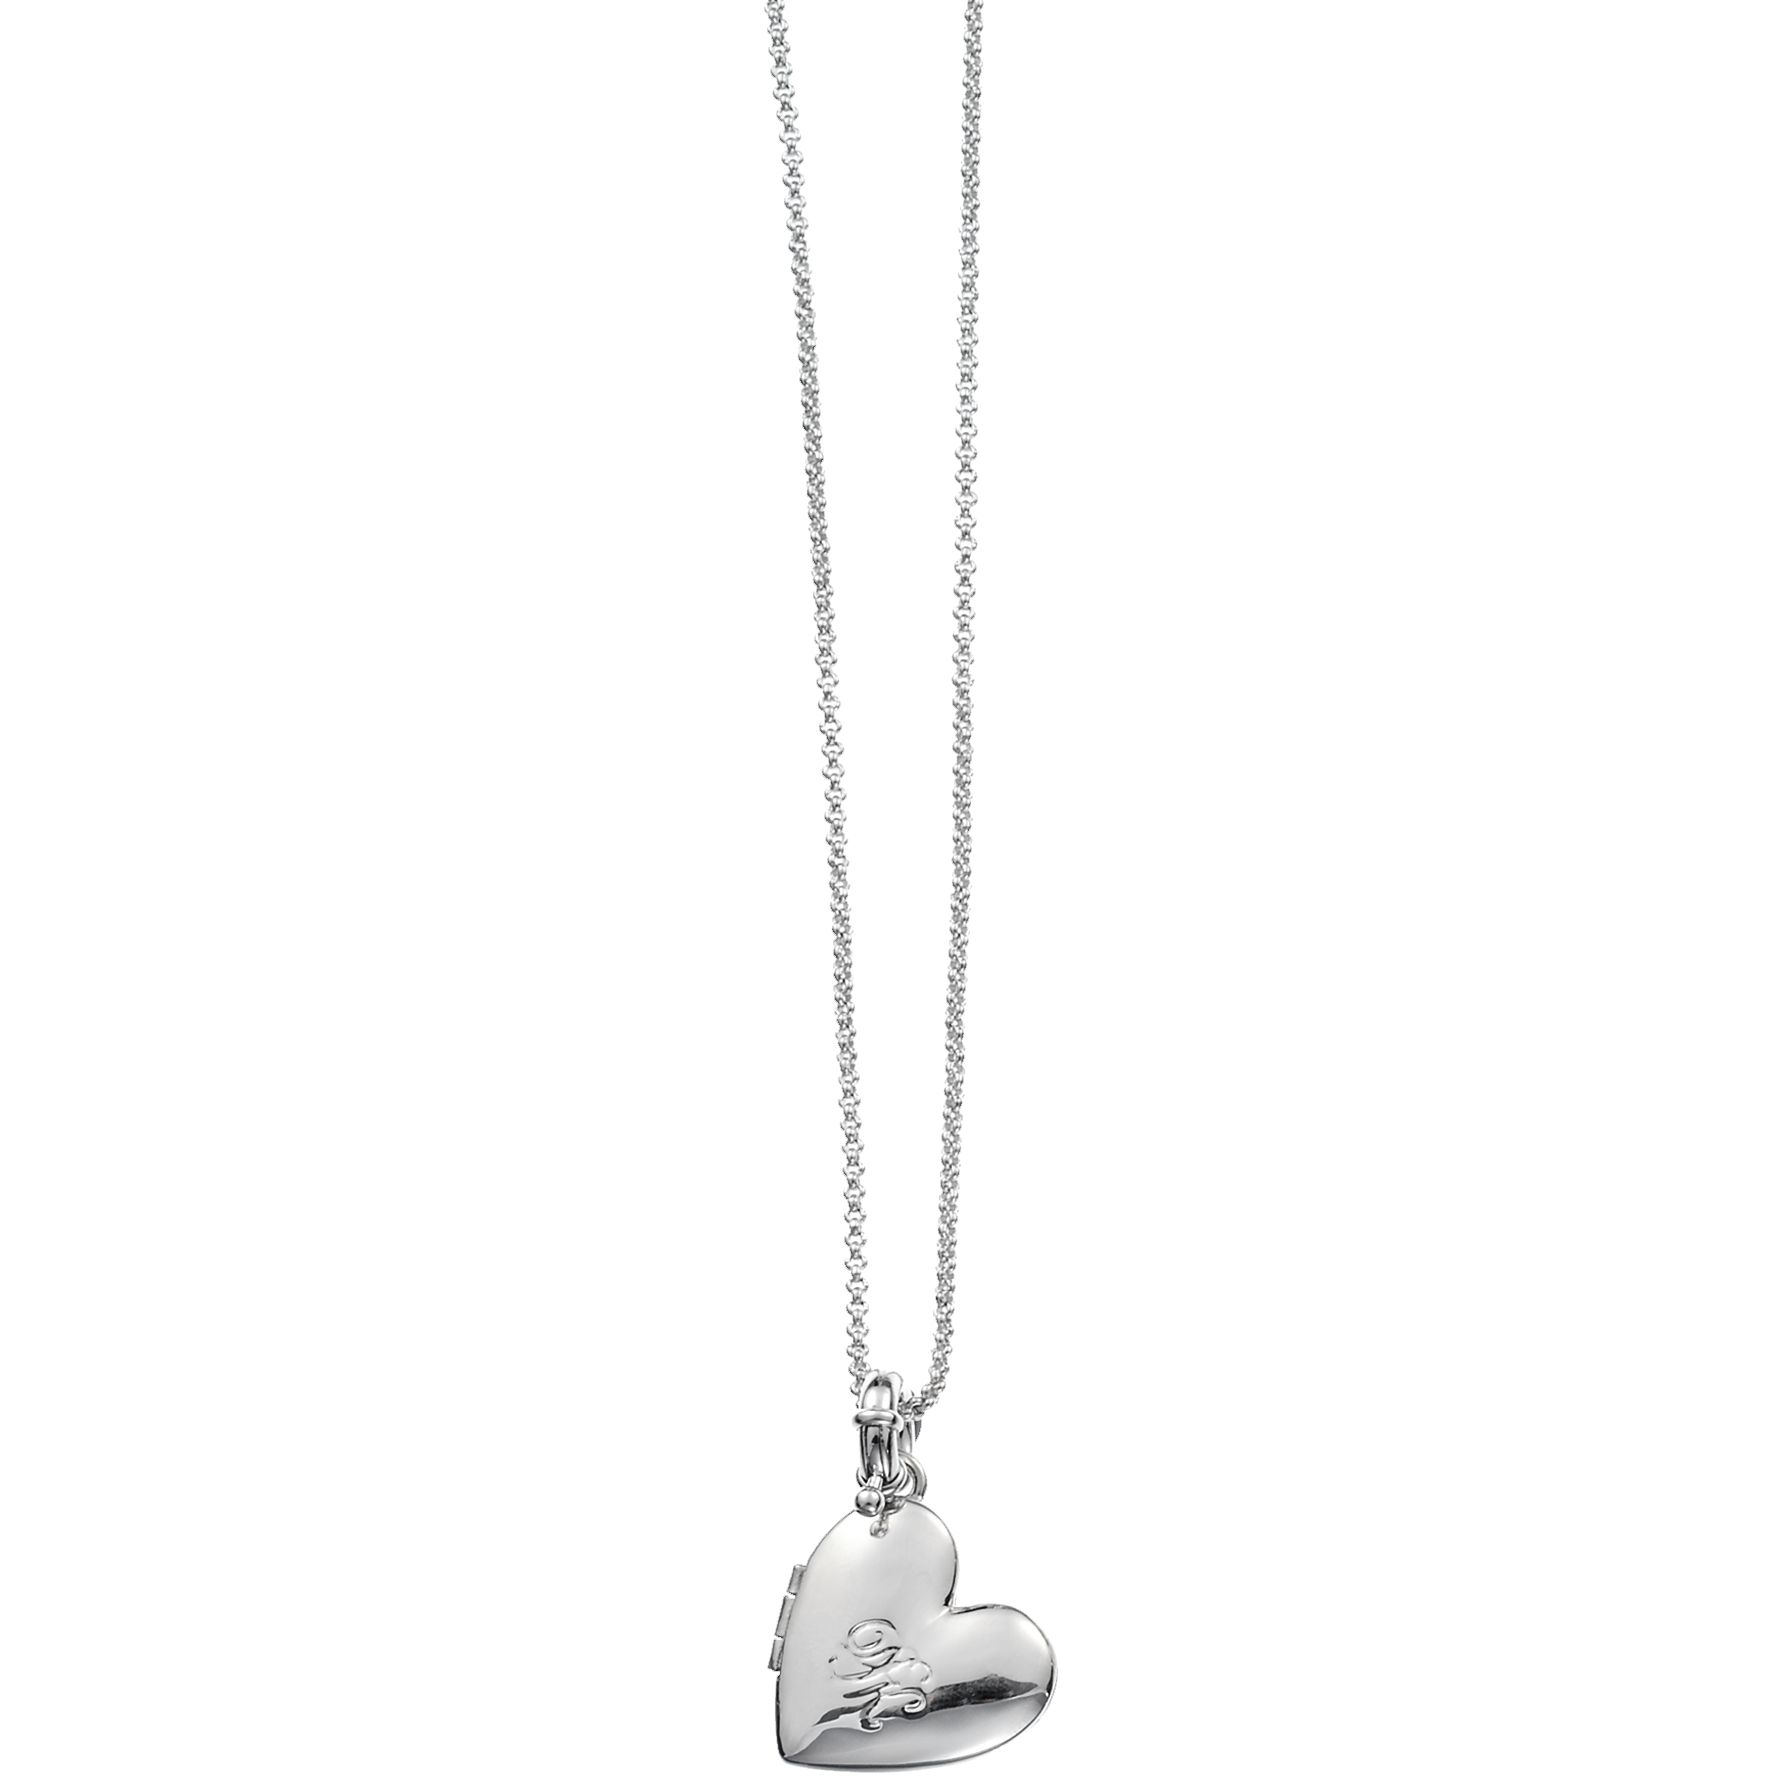 Dyrberg/Kern Caress Silver Shiny Heart Locket Necklace